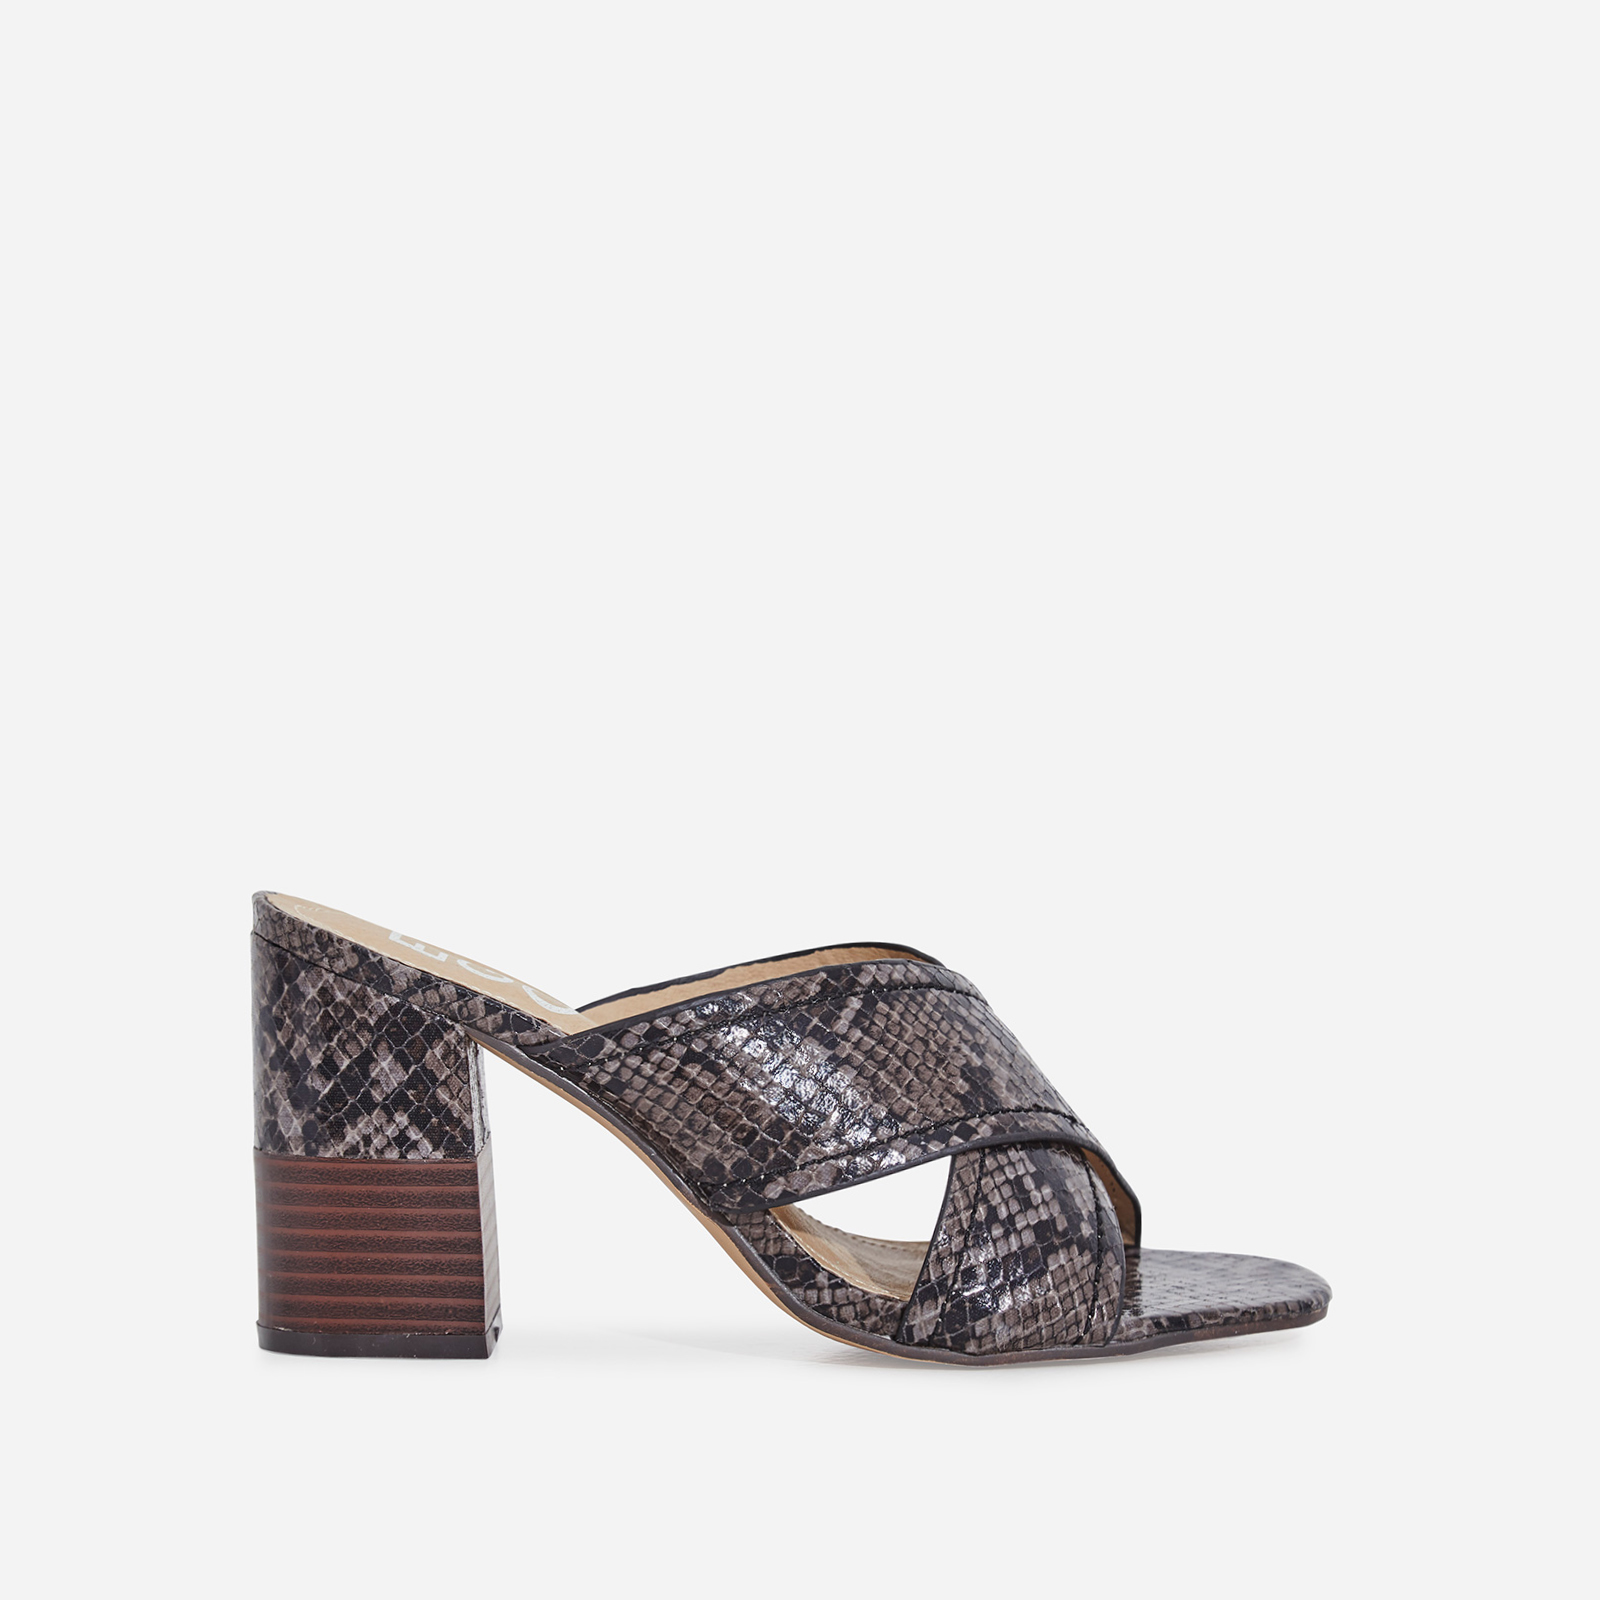 Holland Crossover Block Heel Mule In Black Snake Print Faux Leather